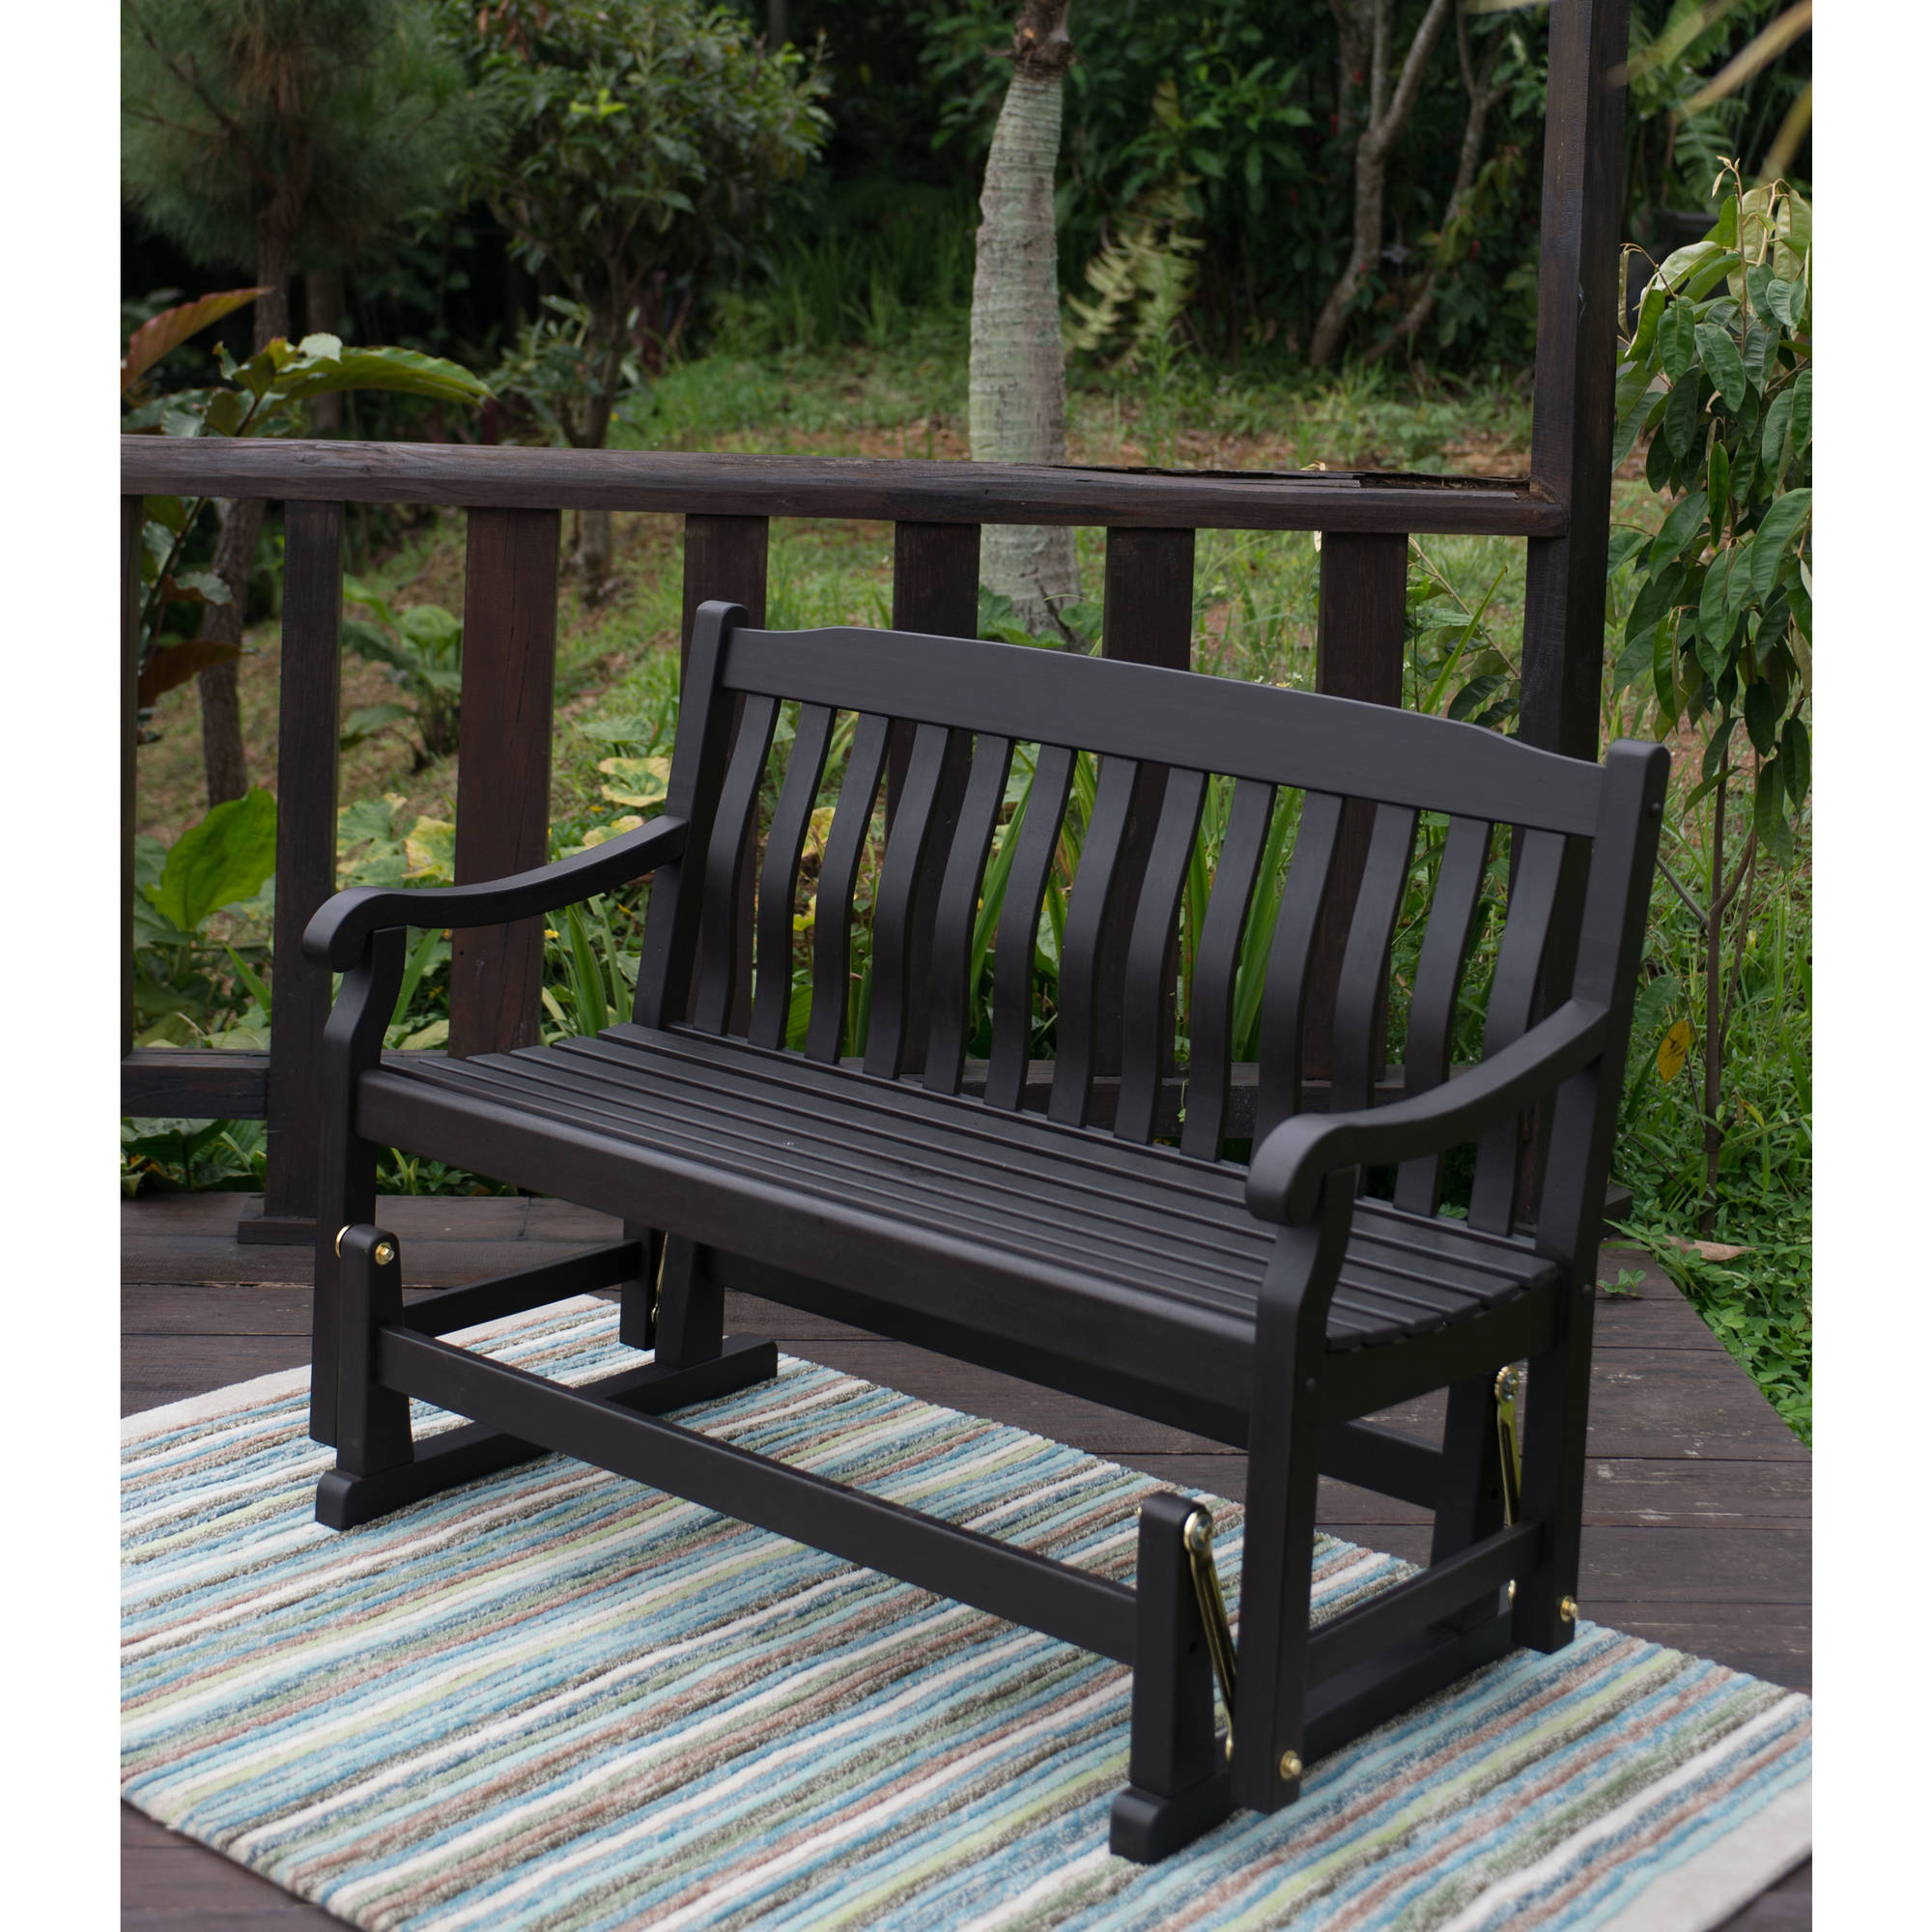 2019 Better Homes & Gardens Delahey Outdoor Glider Bench, Dark Brown – Walmart With Regard To Outdoor Patio Swing Glider Bench Chairs (View 5 of 25)